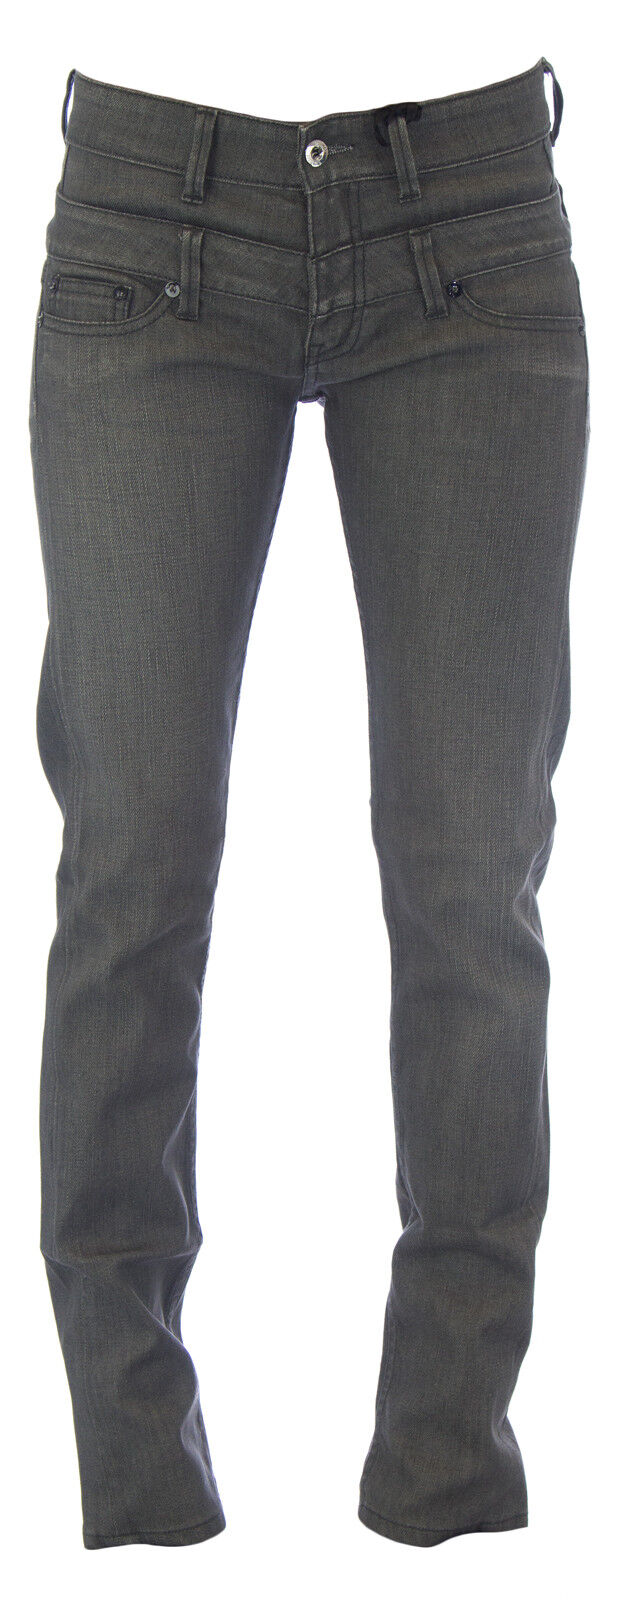 blueE BLOOD Women's Dark Grey Bartlett Double Waist Classic Rise Denim Jeans NEW